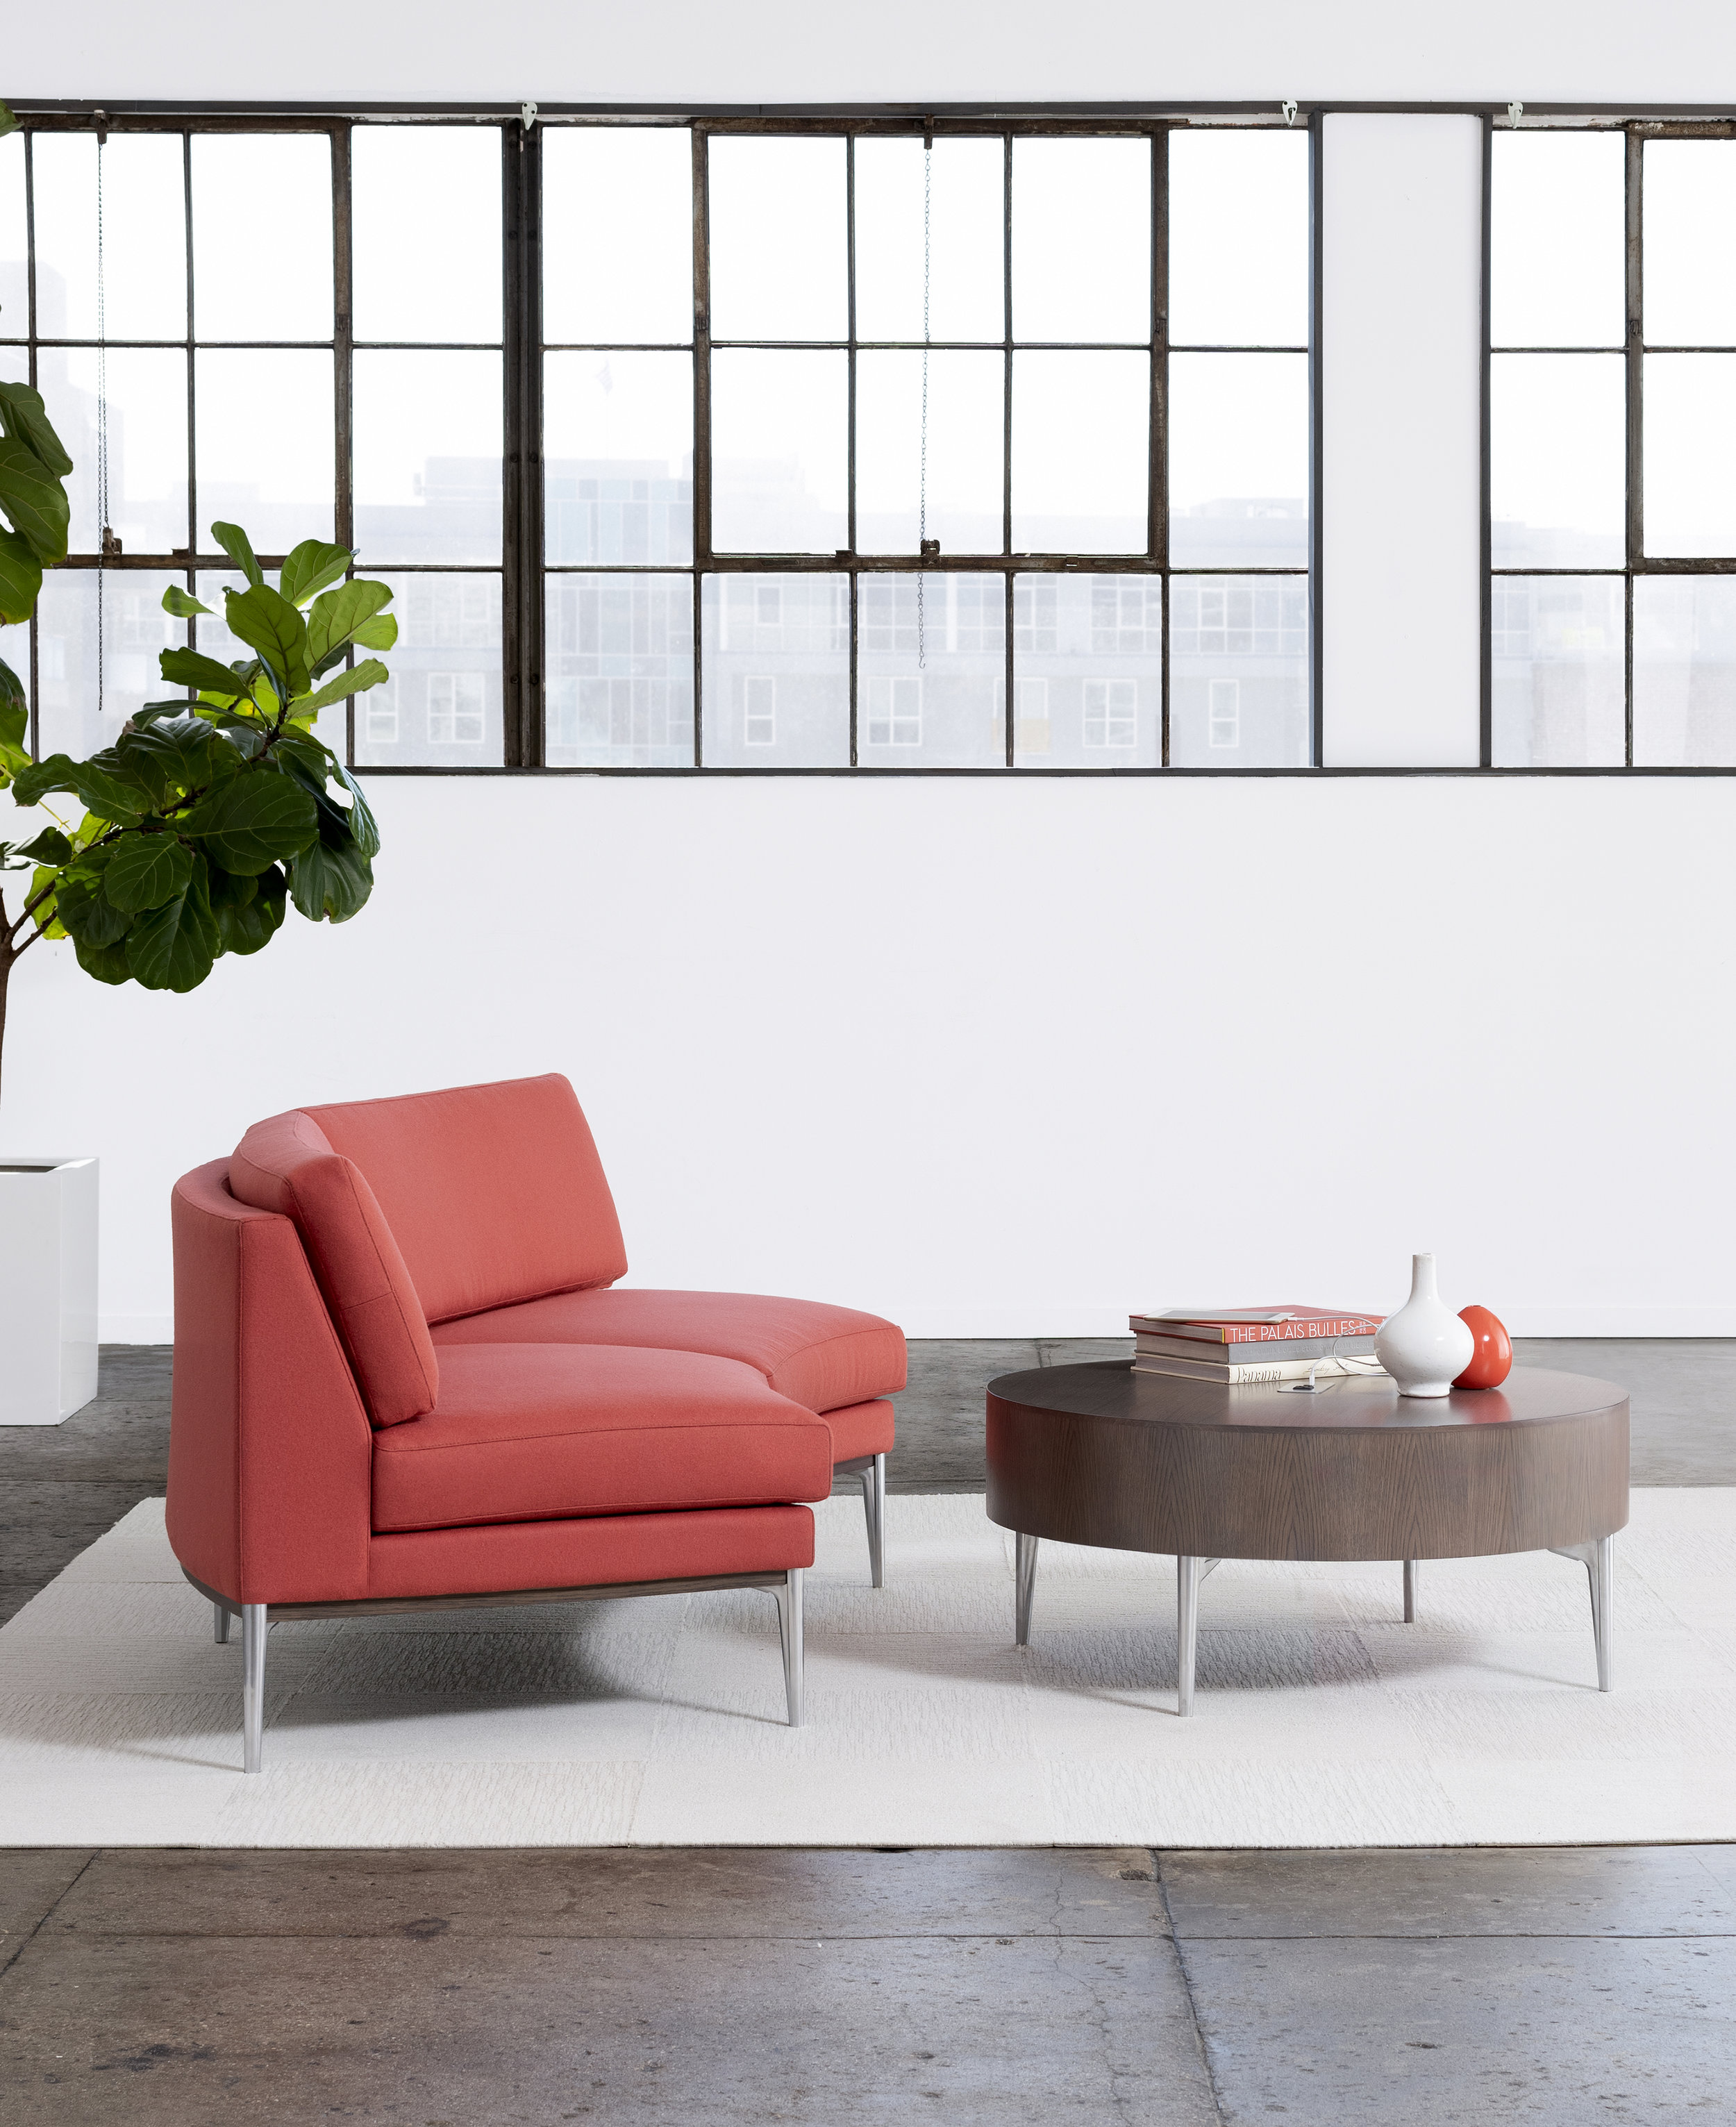 44188409_uptown_social_60-degree_two-seat_unit_occasional_table.jpg